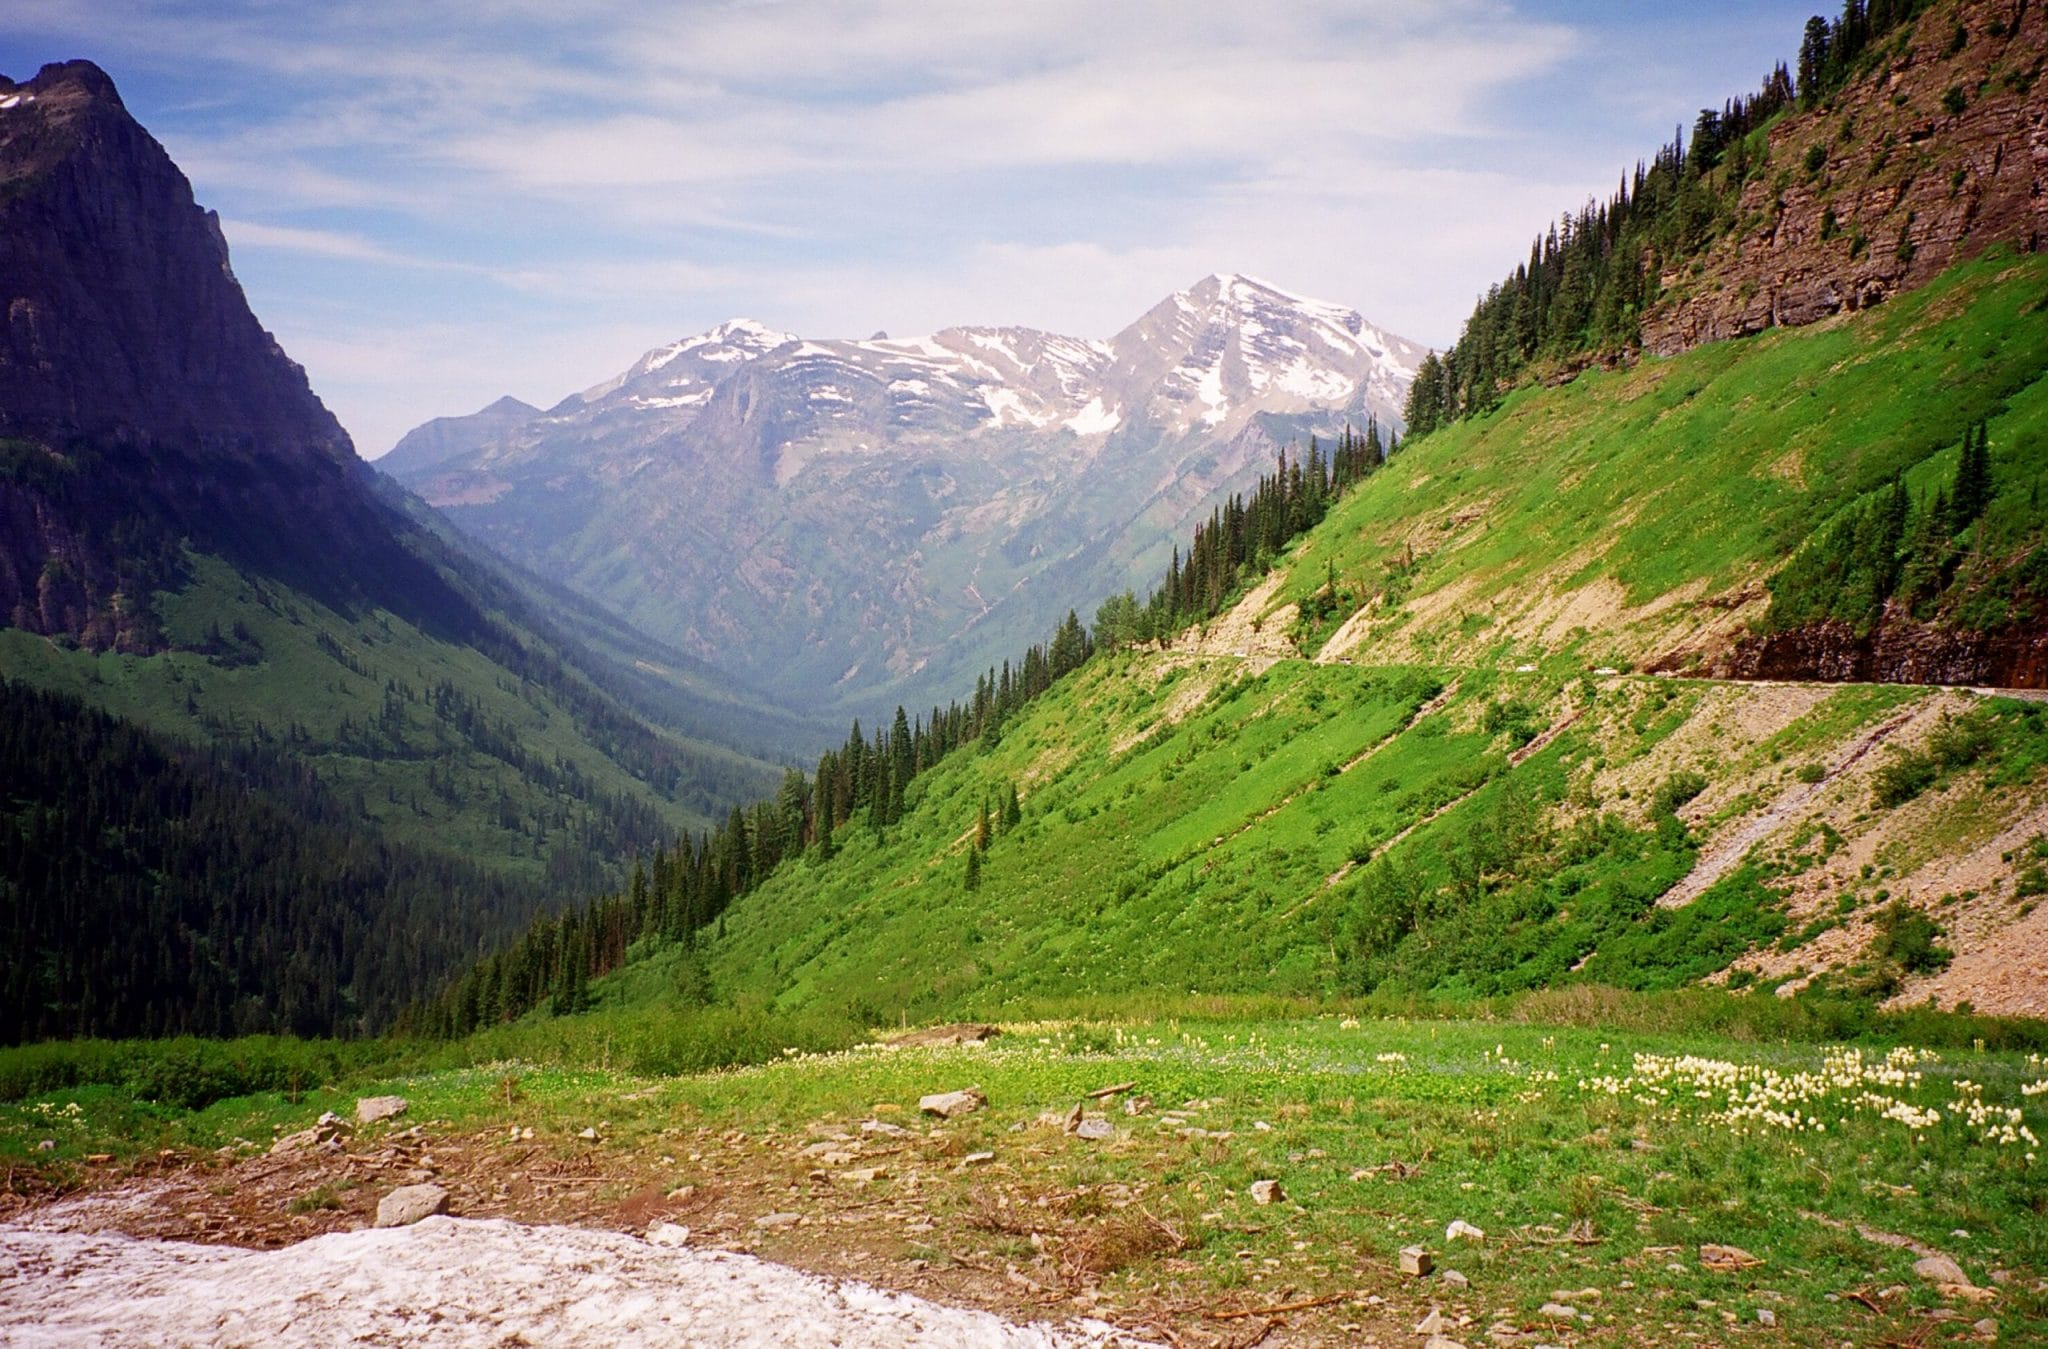 Montana: Going-to-the-Sun Road